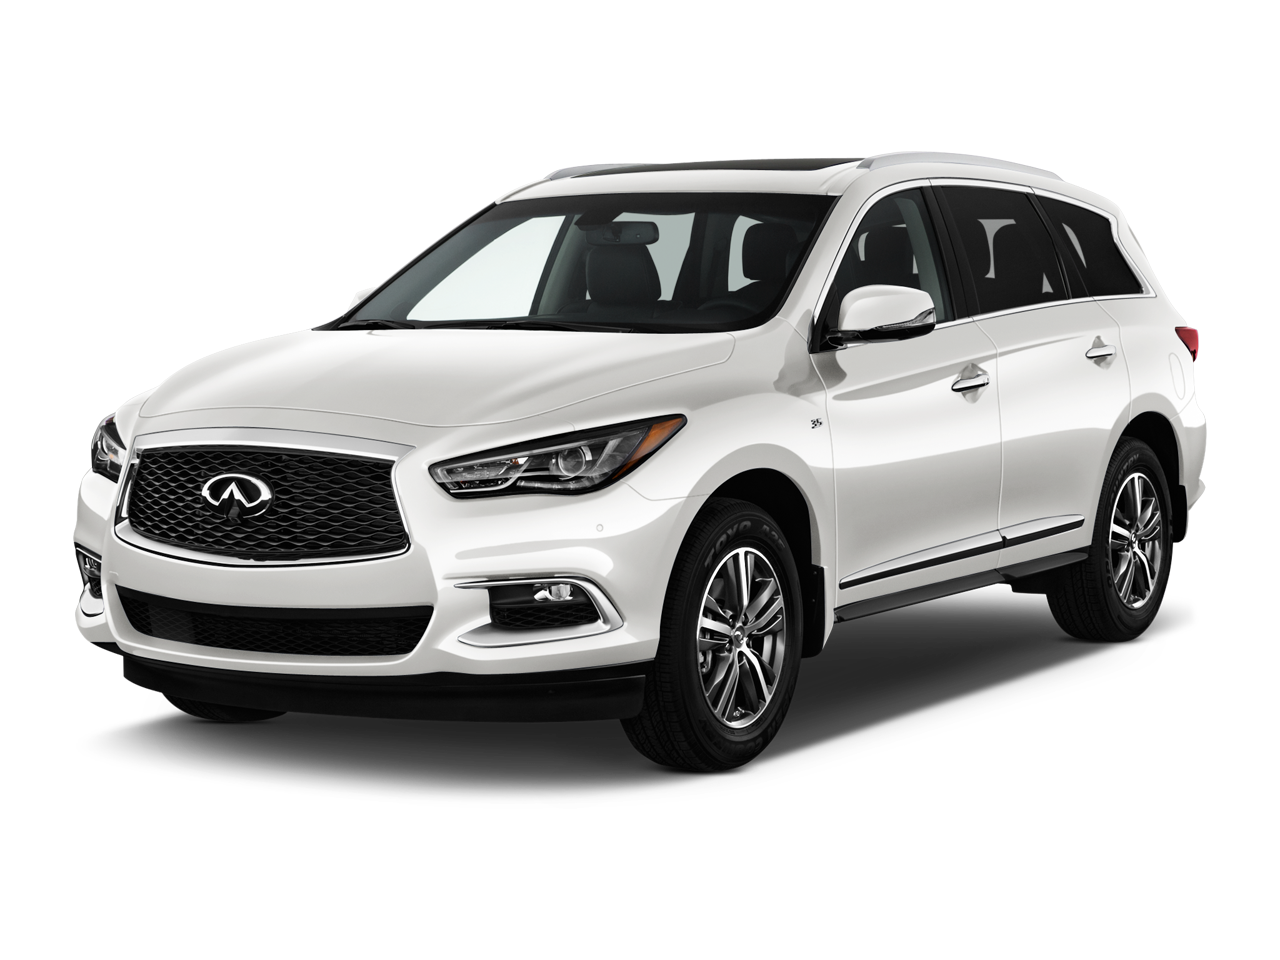 new 2017 infiniti qx60 near tacoma wa infiniti of tacoma at fife. Black Bedroom Furniture Sets. Home Design Ideas